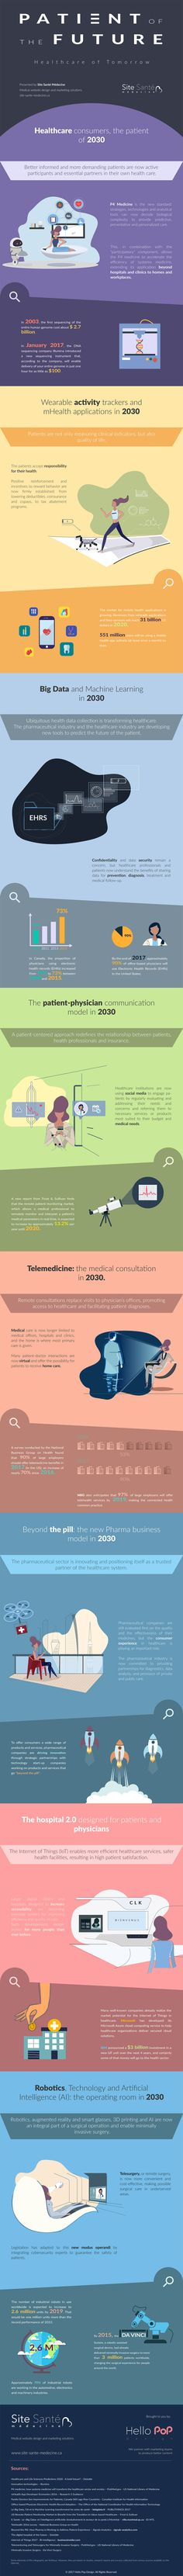 Top 8 digital transformation trends in the Healthcare Industry. Check out our new health infographic. #health #infographic